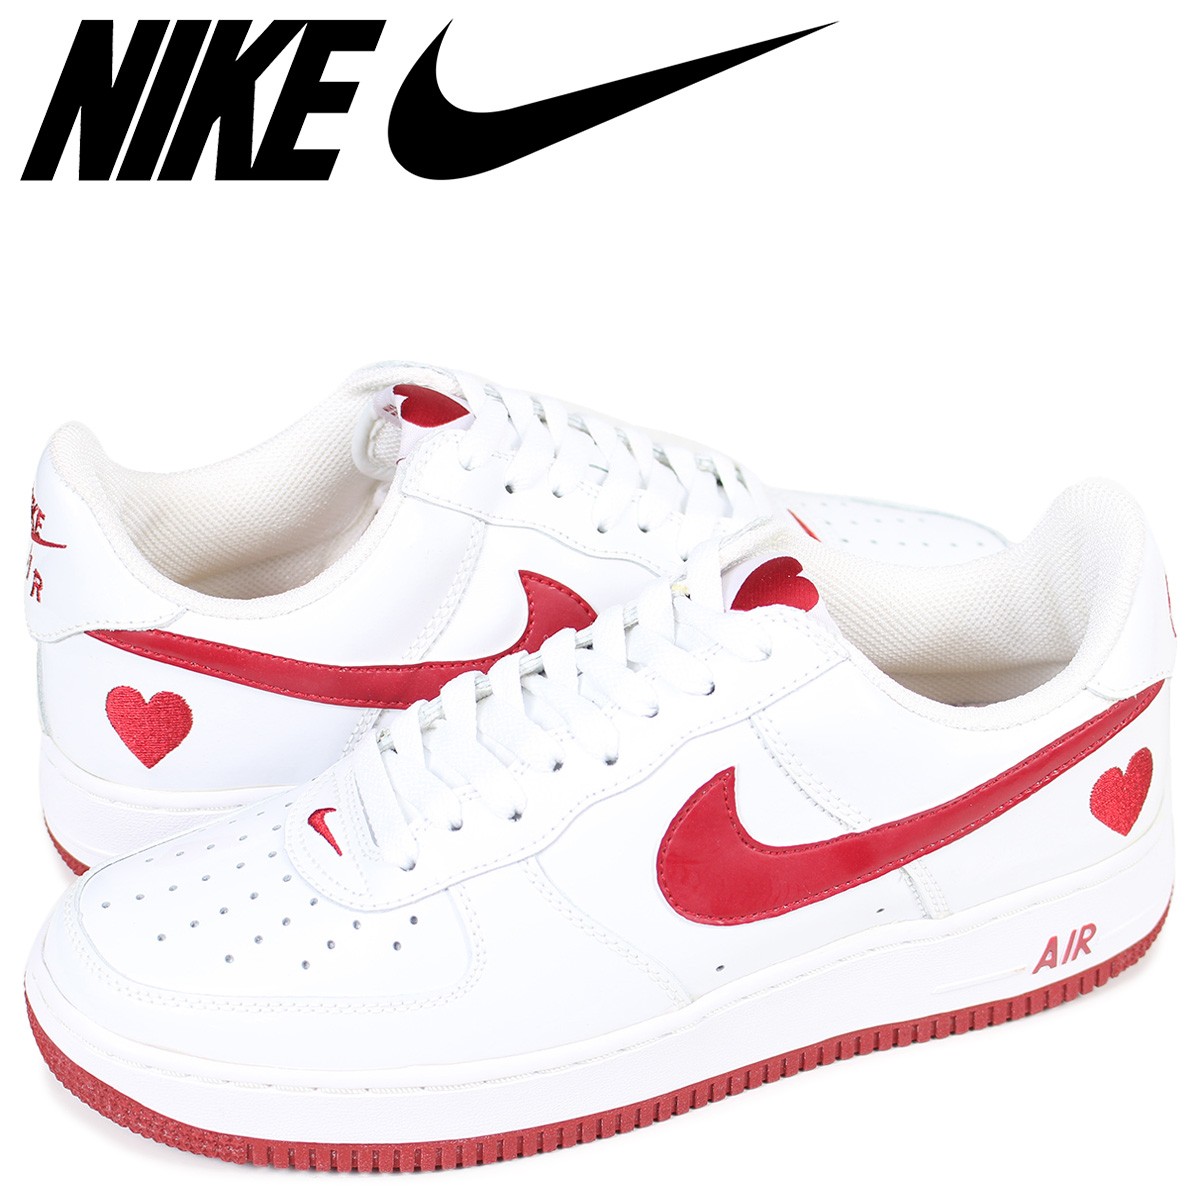 Allsports Nike Wmns Air Force 1 Valentine Day 2004 Nike Air Force 1